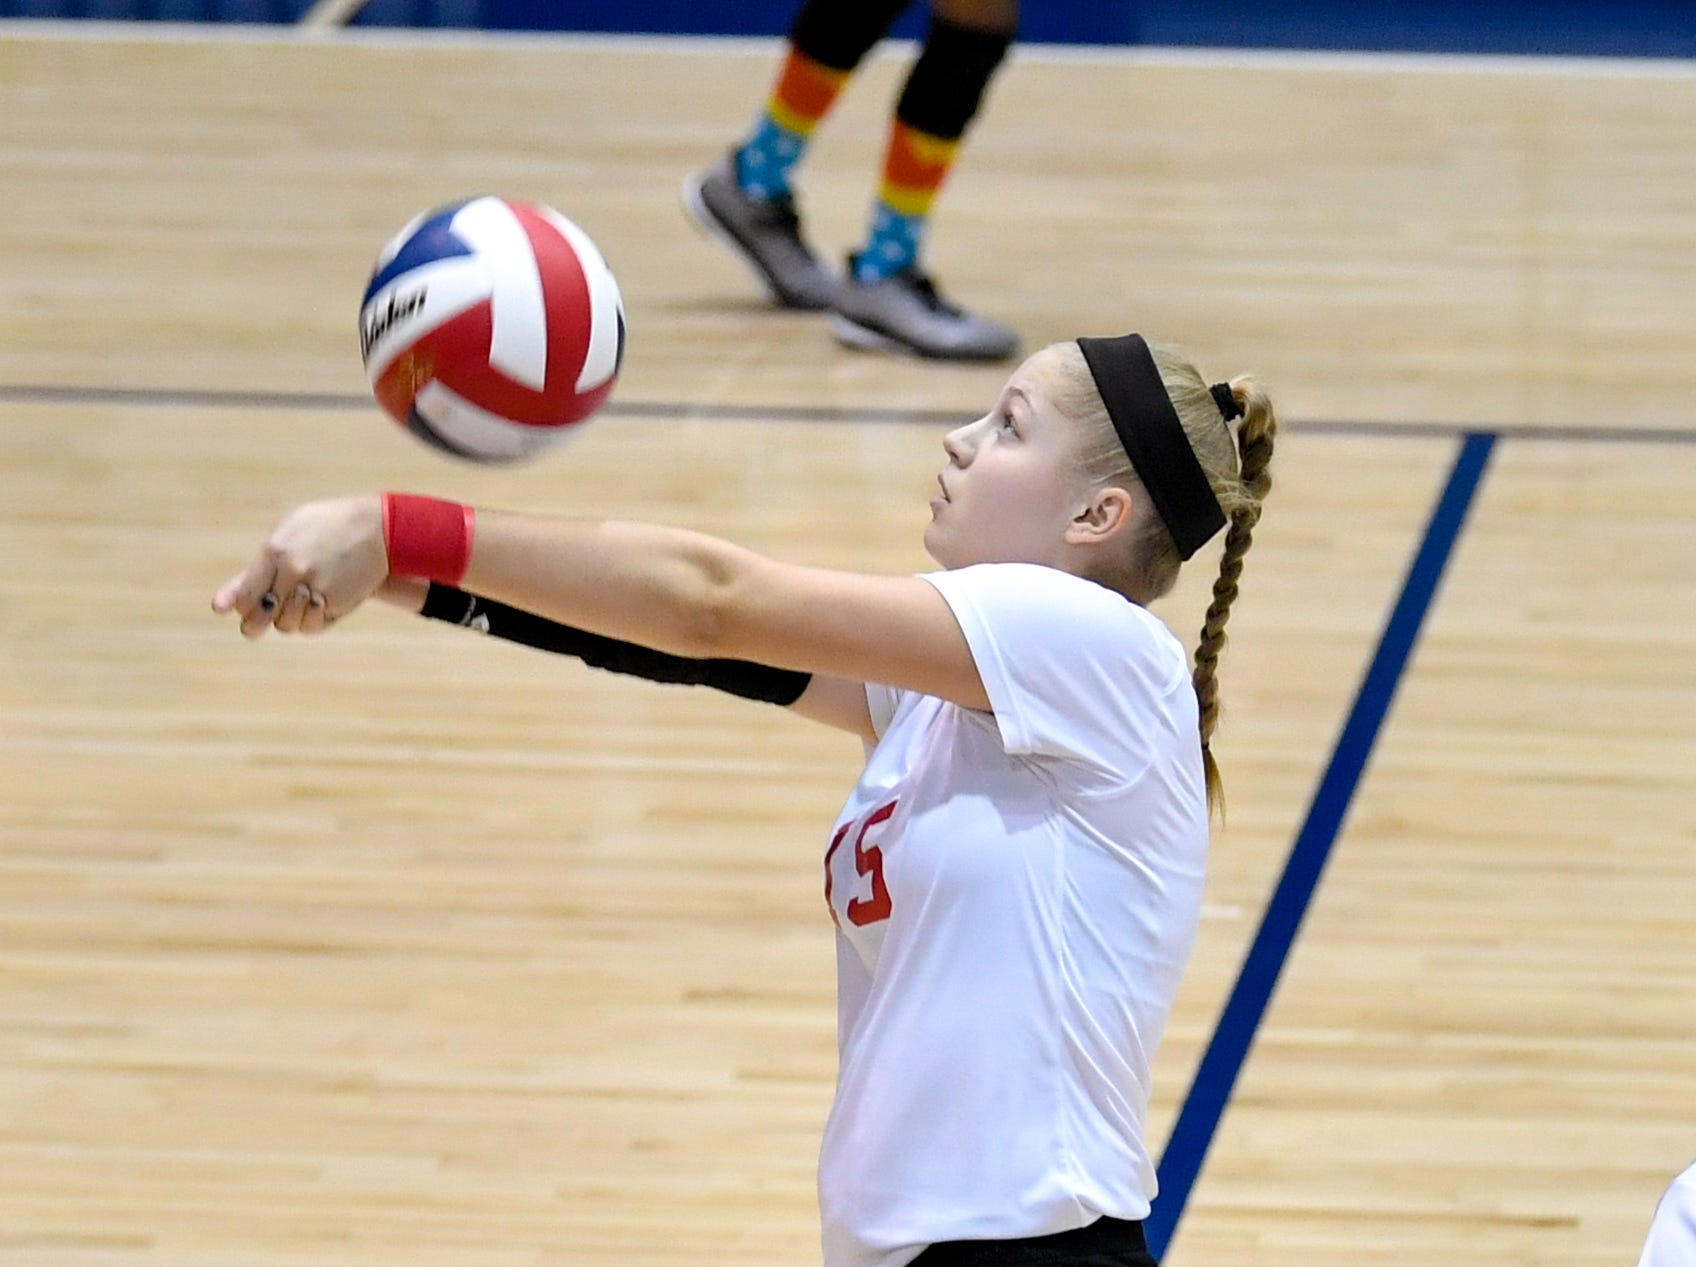 Dover's Abby Diehl (15) bumps the ball during the YAIAA league volleyball tournament semifinals between West York and Dover, Tuesday, October 23, 2018. The Bulldogs defeated the Eagles 3-1.